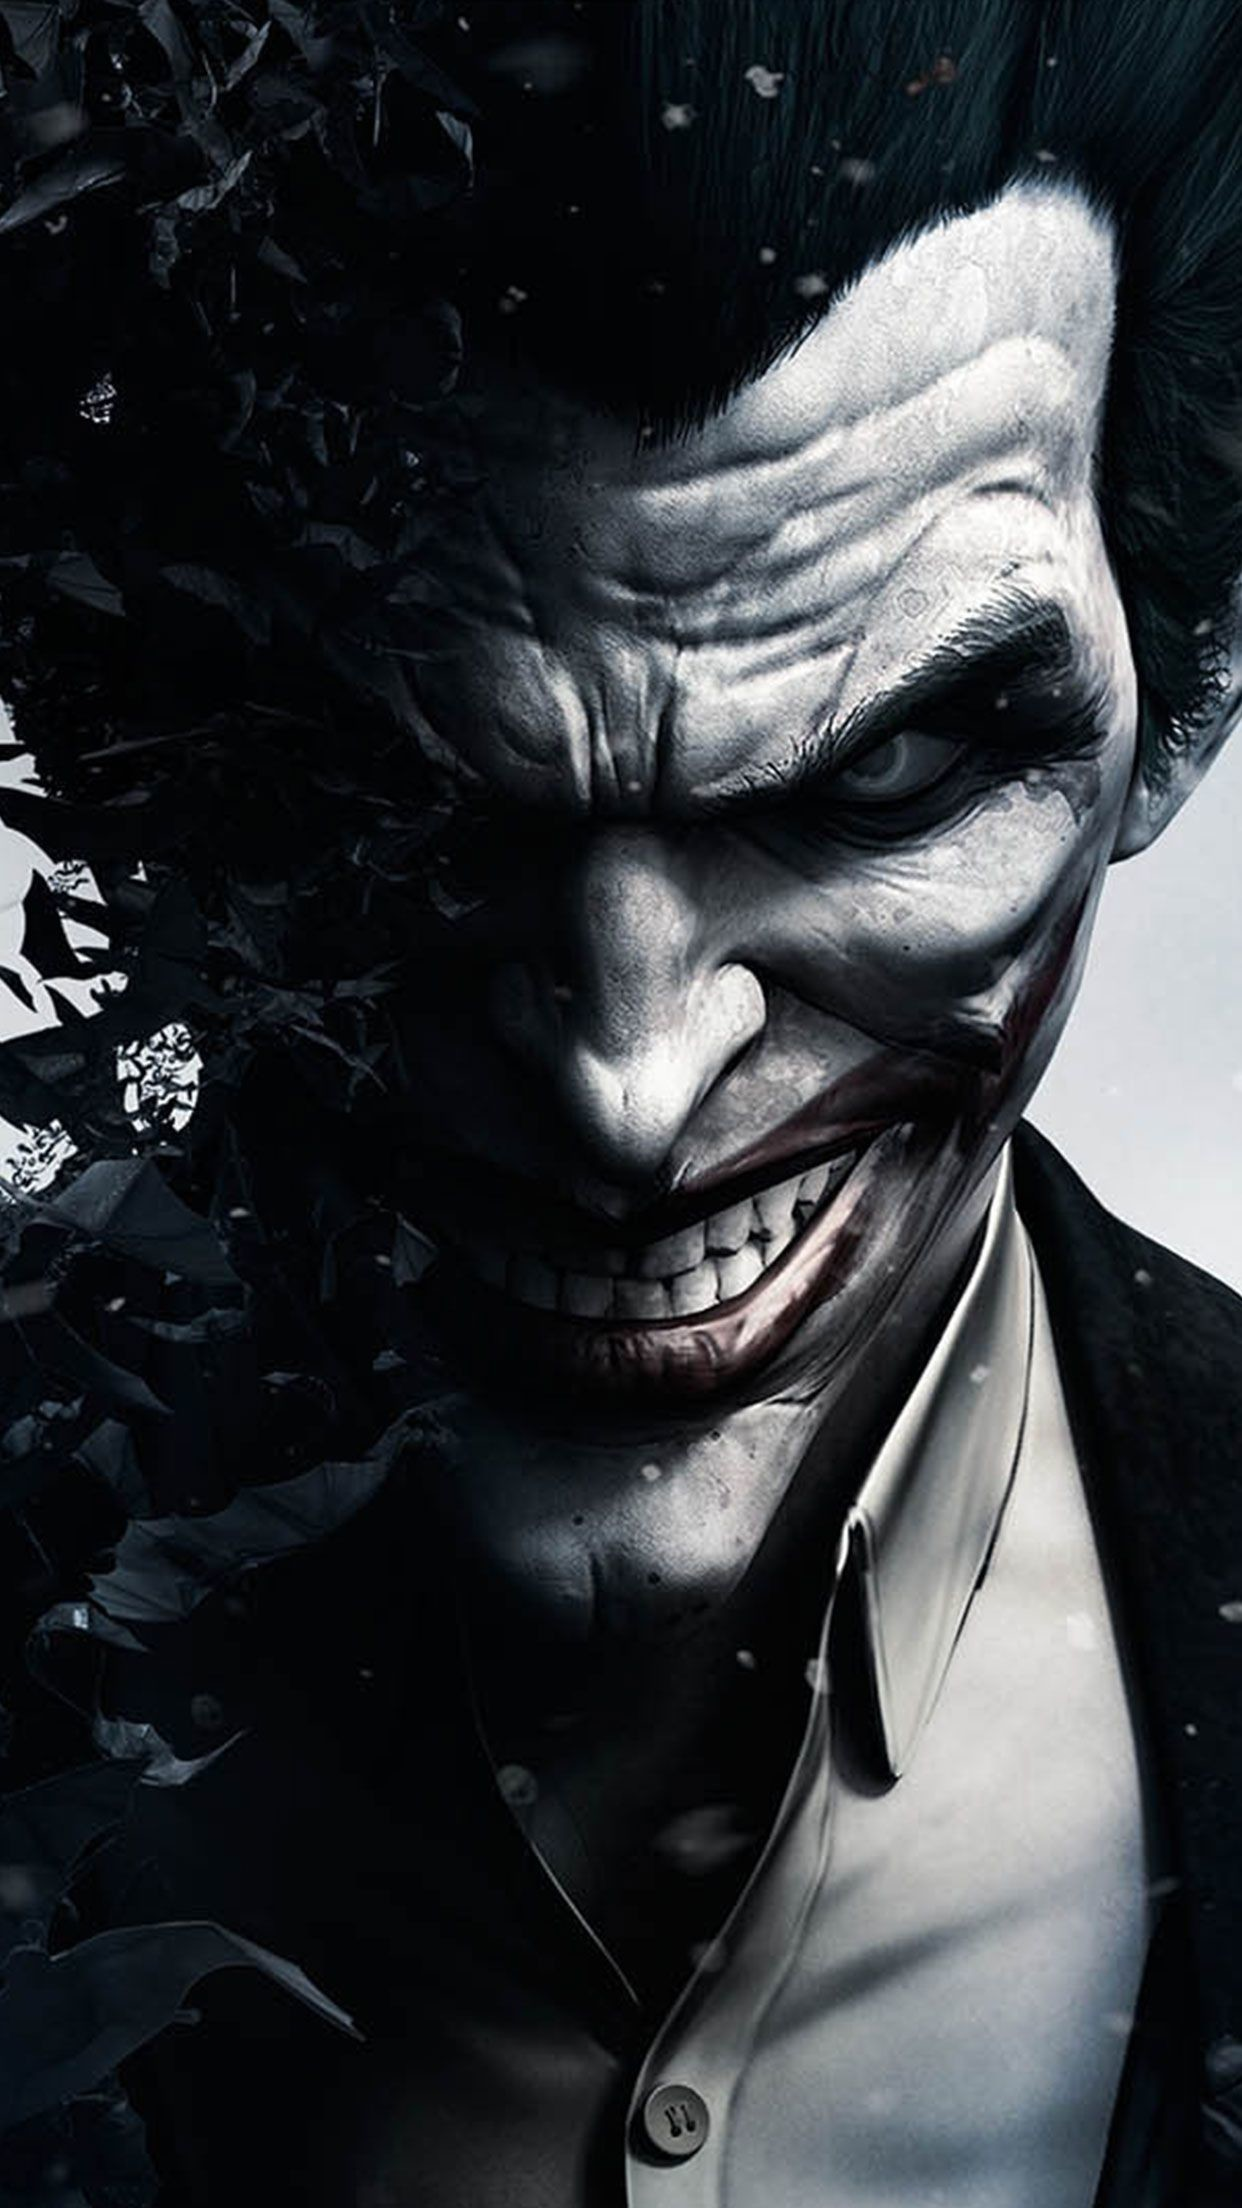 4k Ultra Hd Joker Wallpapers Hd Desktop Backgrounds Best Joker Wallpaper Hd 1080x1920 Download Hd Wallpaper Wallpapertip